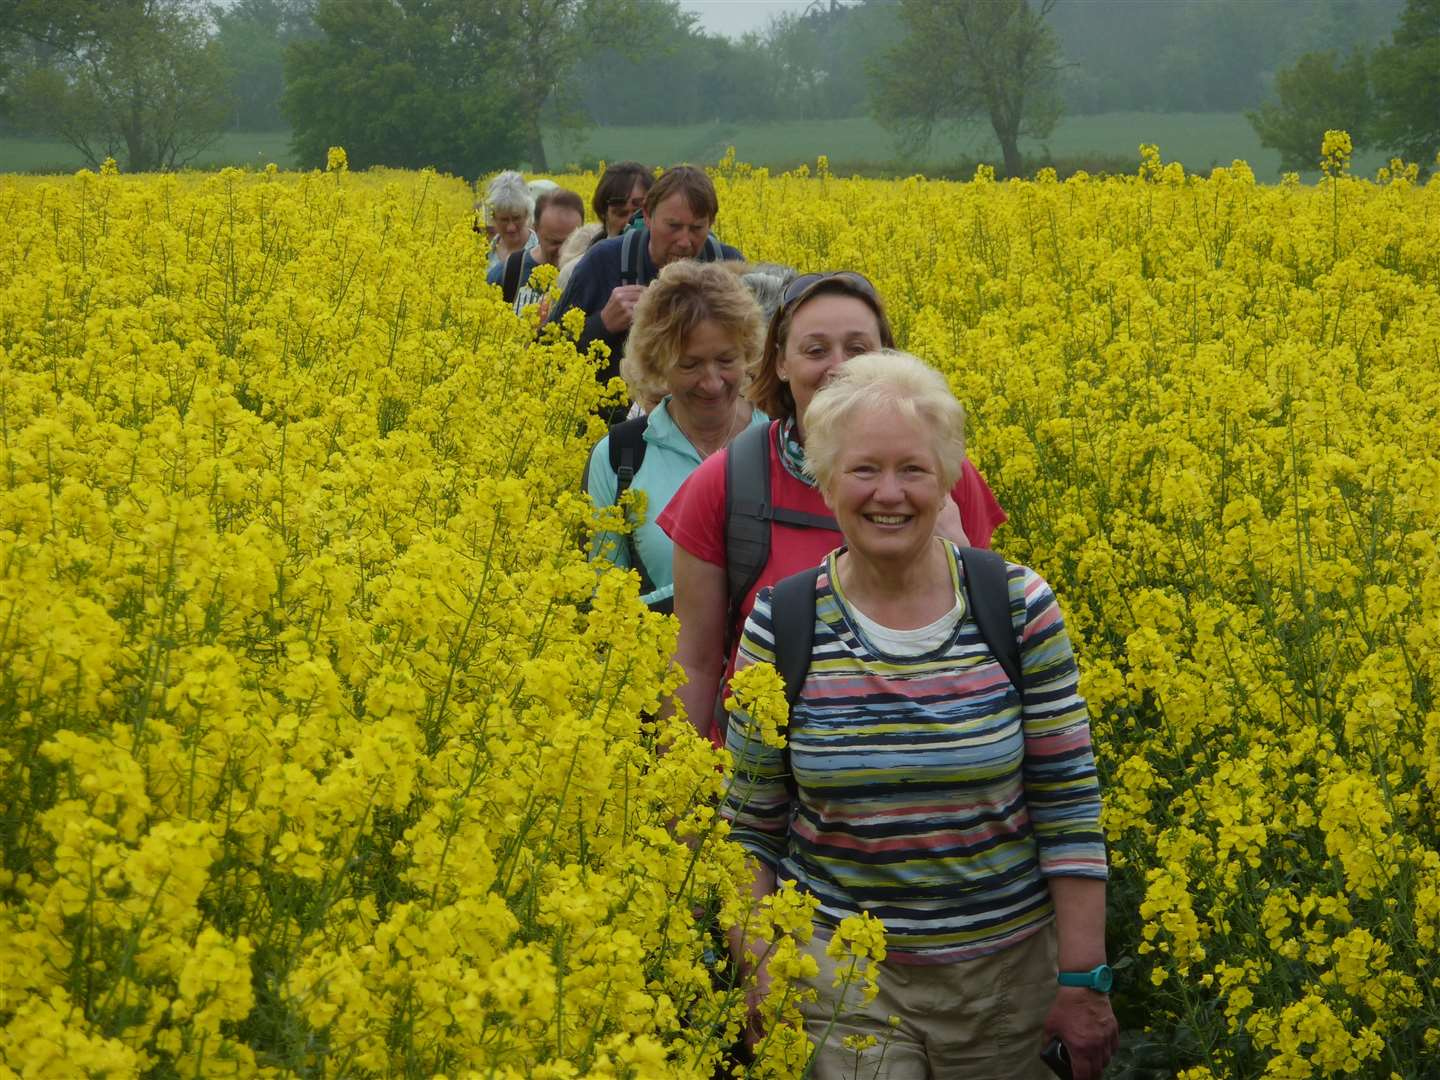 suffolk walking festival - previous event (9026706)